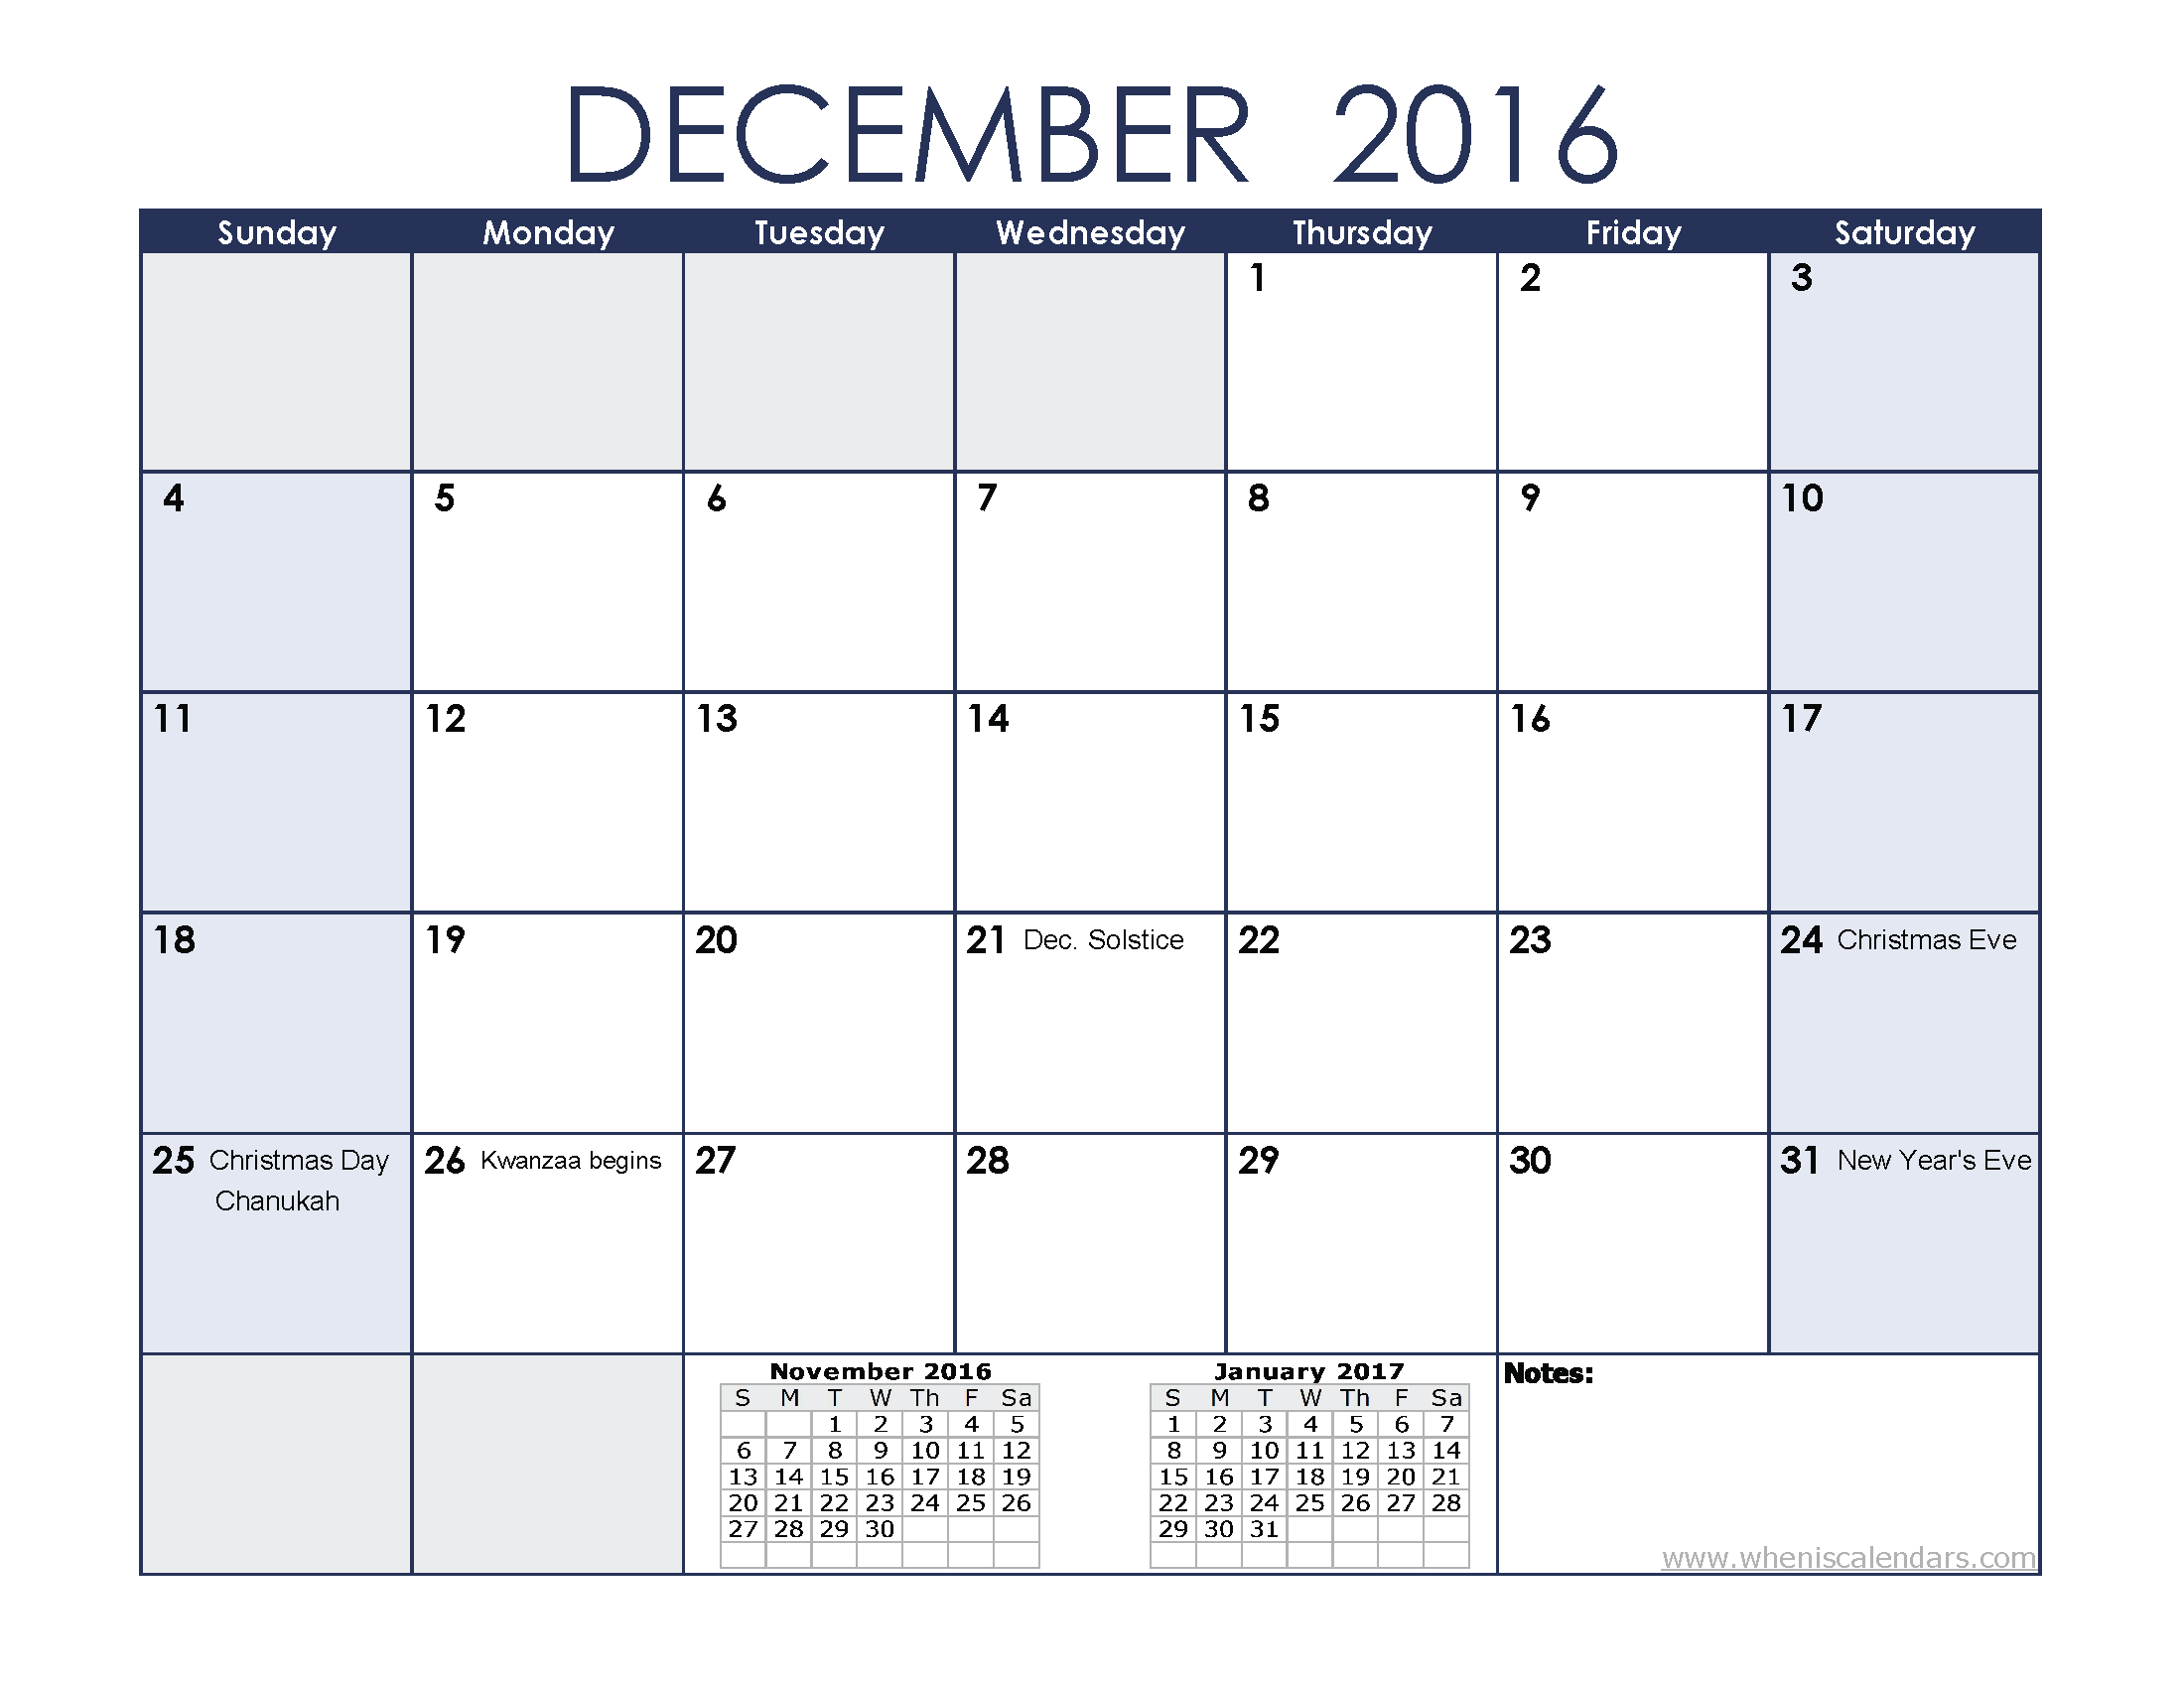 December 2016 Calendar Printable With Holidays | 2017 calendar